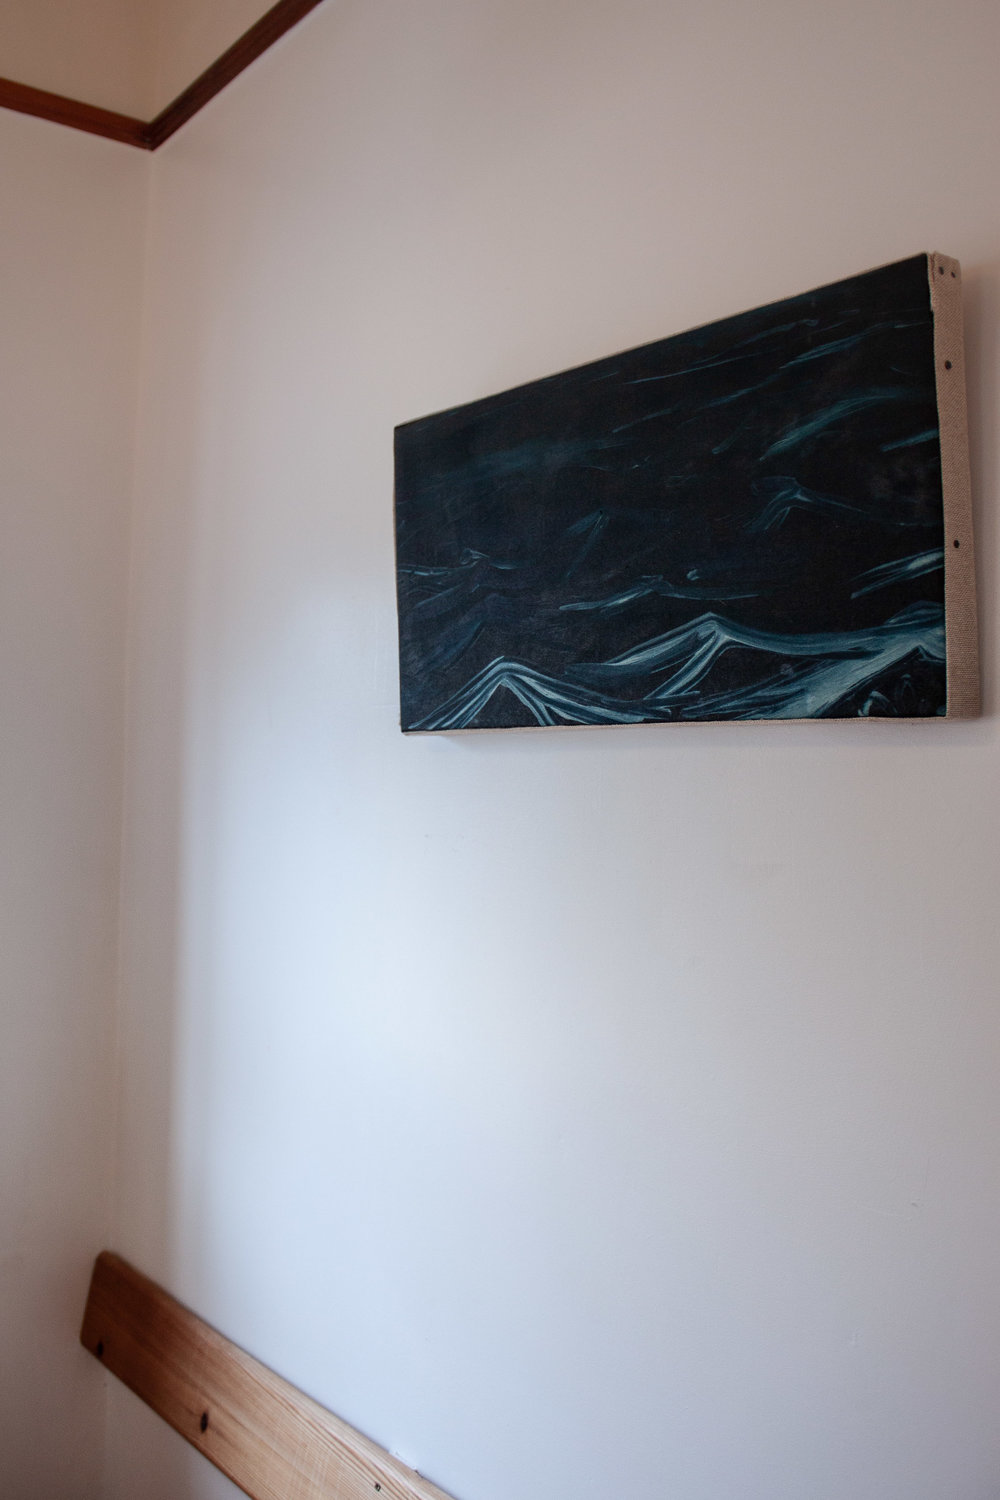 - This untitled painting, completed January 2019 is now for sale. Made following an Atlantic crossing in November 2018, it seeks to emulate the dark rolling hills of Atlantic swell.In this Canvas I wanted to create a window into a moment in time. The moonlit waves could really be in any time or place, for me they are emotive of a very specific nano second in time.I rarely work in oil. I don't like the smell of mineral spirits or Linseed oil. Somehow this elevates their vibrance + density when I do treat myself.In these more recent paintings I am attempting to further explore painting as a craft. Transferring skills such as wood working and upholstery from my work on the interior of sailing boats. Crafting pieces which sit between traditional painting and interior design. These paintings are designed to be lived with, to accent a space + provide a portal to another time and place.